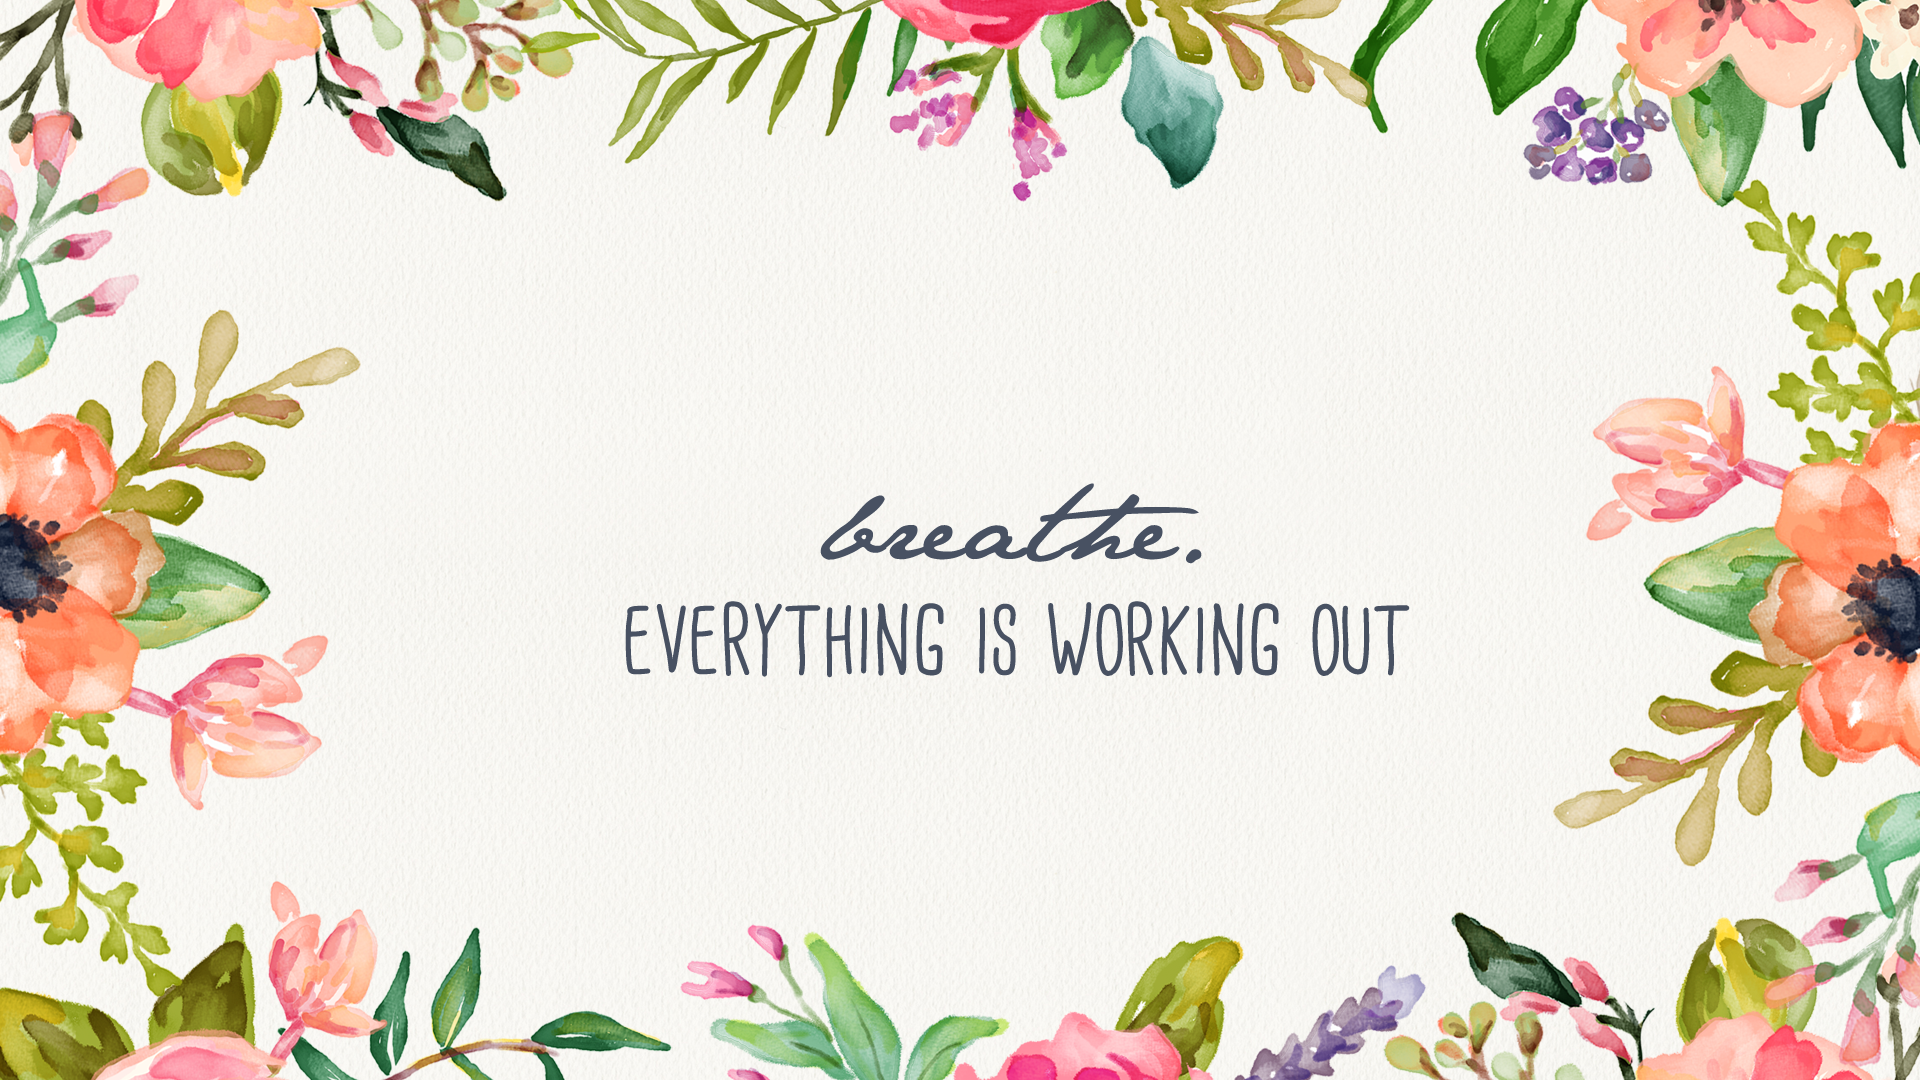 Free Download Breathe Floral Desktop Wallpaper Inspired By